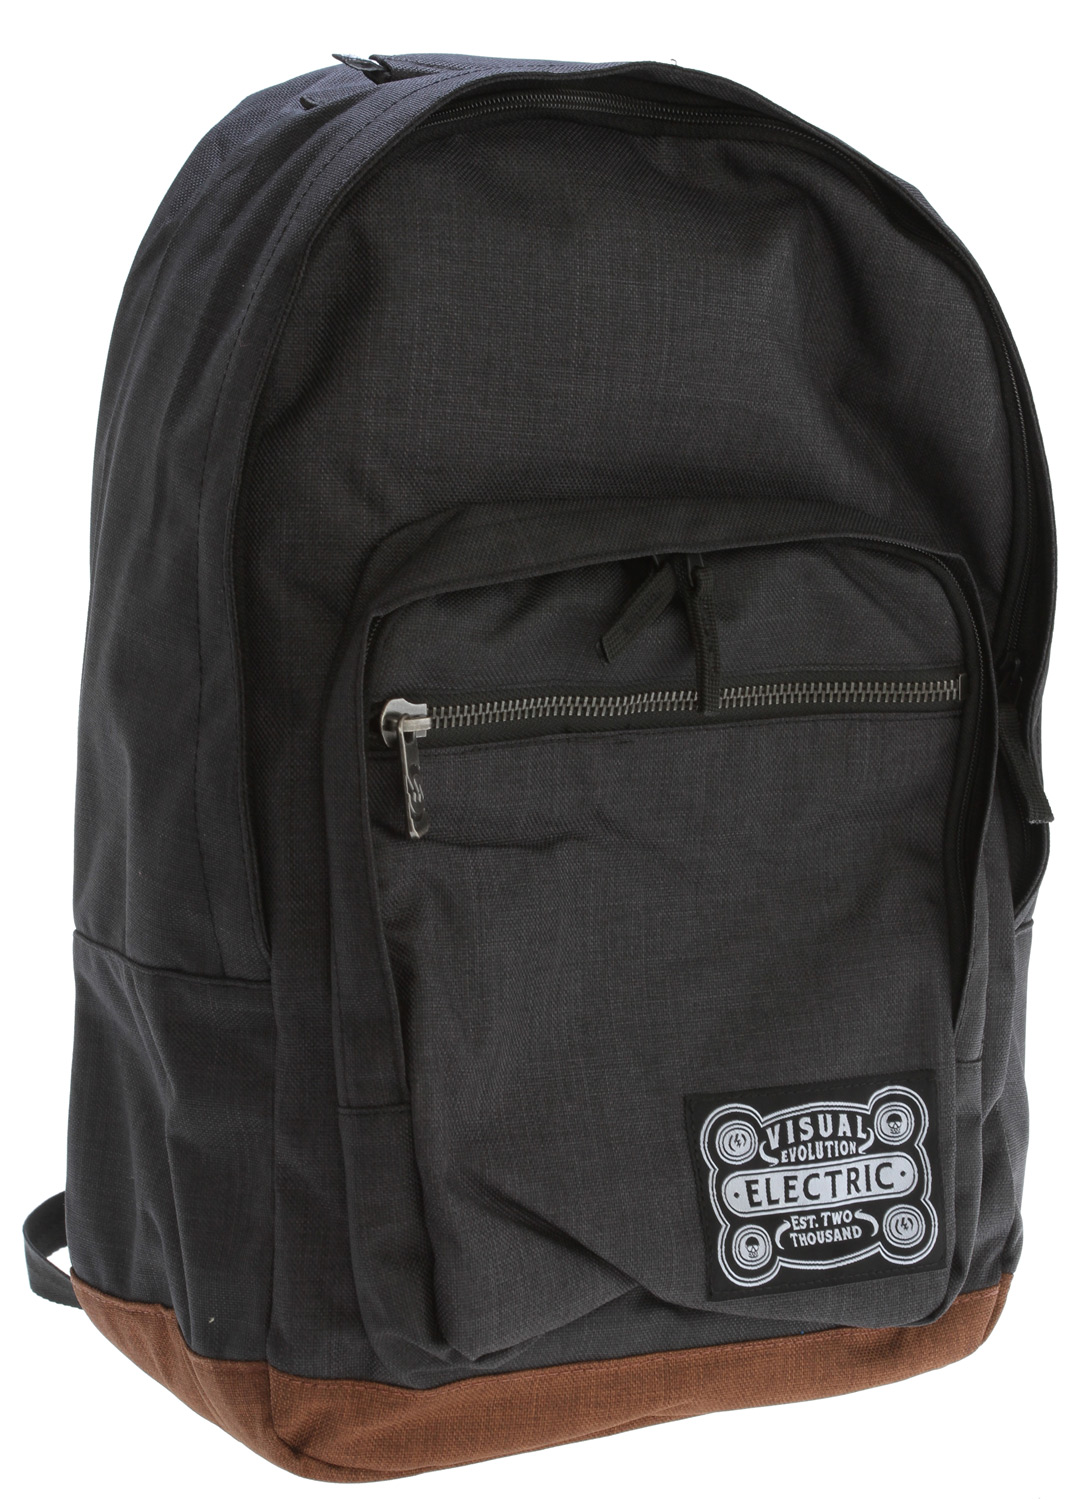 "Key Features of the Electric Everyday Backpack Black: Everyday Backpack Custom Retro Fabric Zipper Main Compartment With Storm Flap Front Pocket With Storm Flap Metal Zipper Front Pocket Padded Handle Interior Padded Laptop Sleeve 75% Polyester 25% Cotton Dimensions: 17.5"" X 11.5"" X 7.5"" - $30.95"